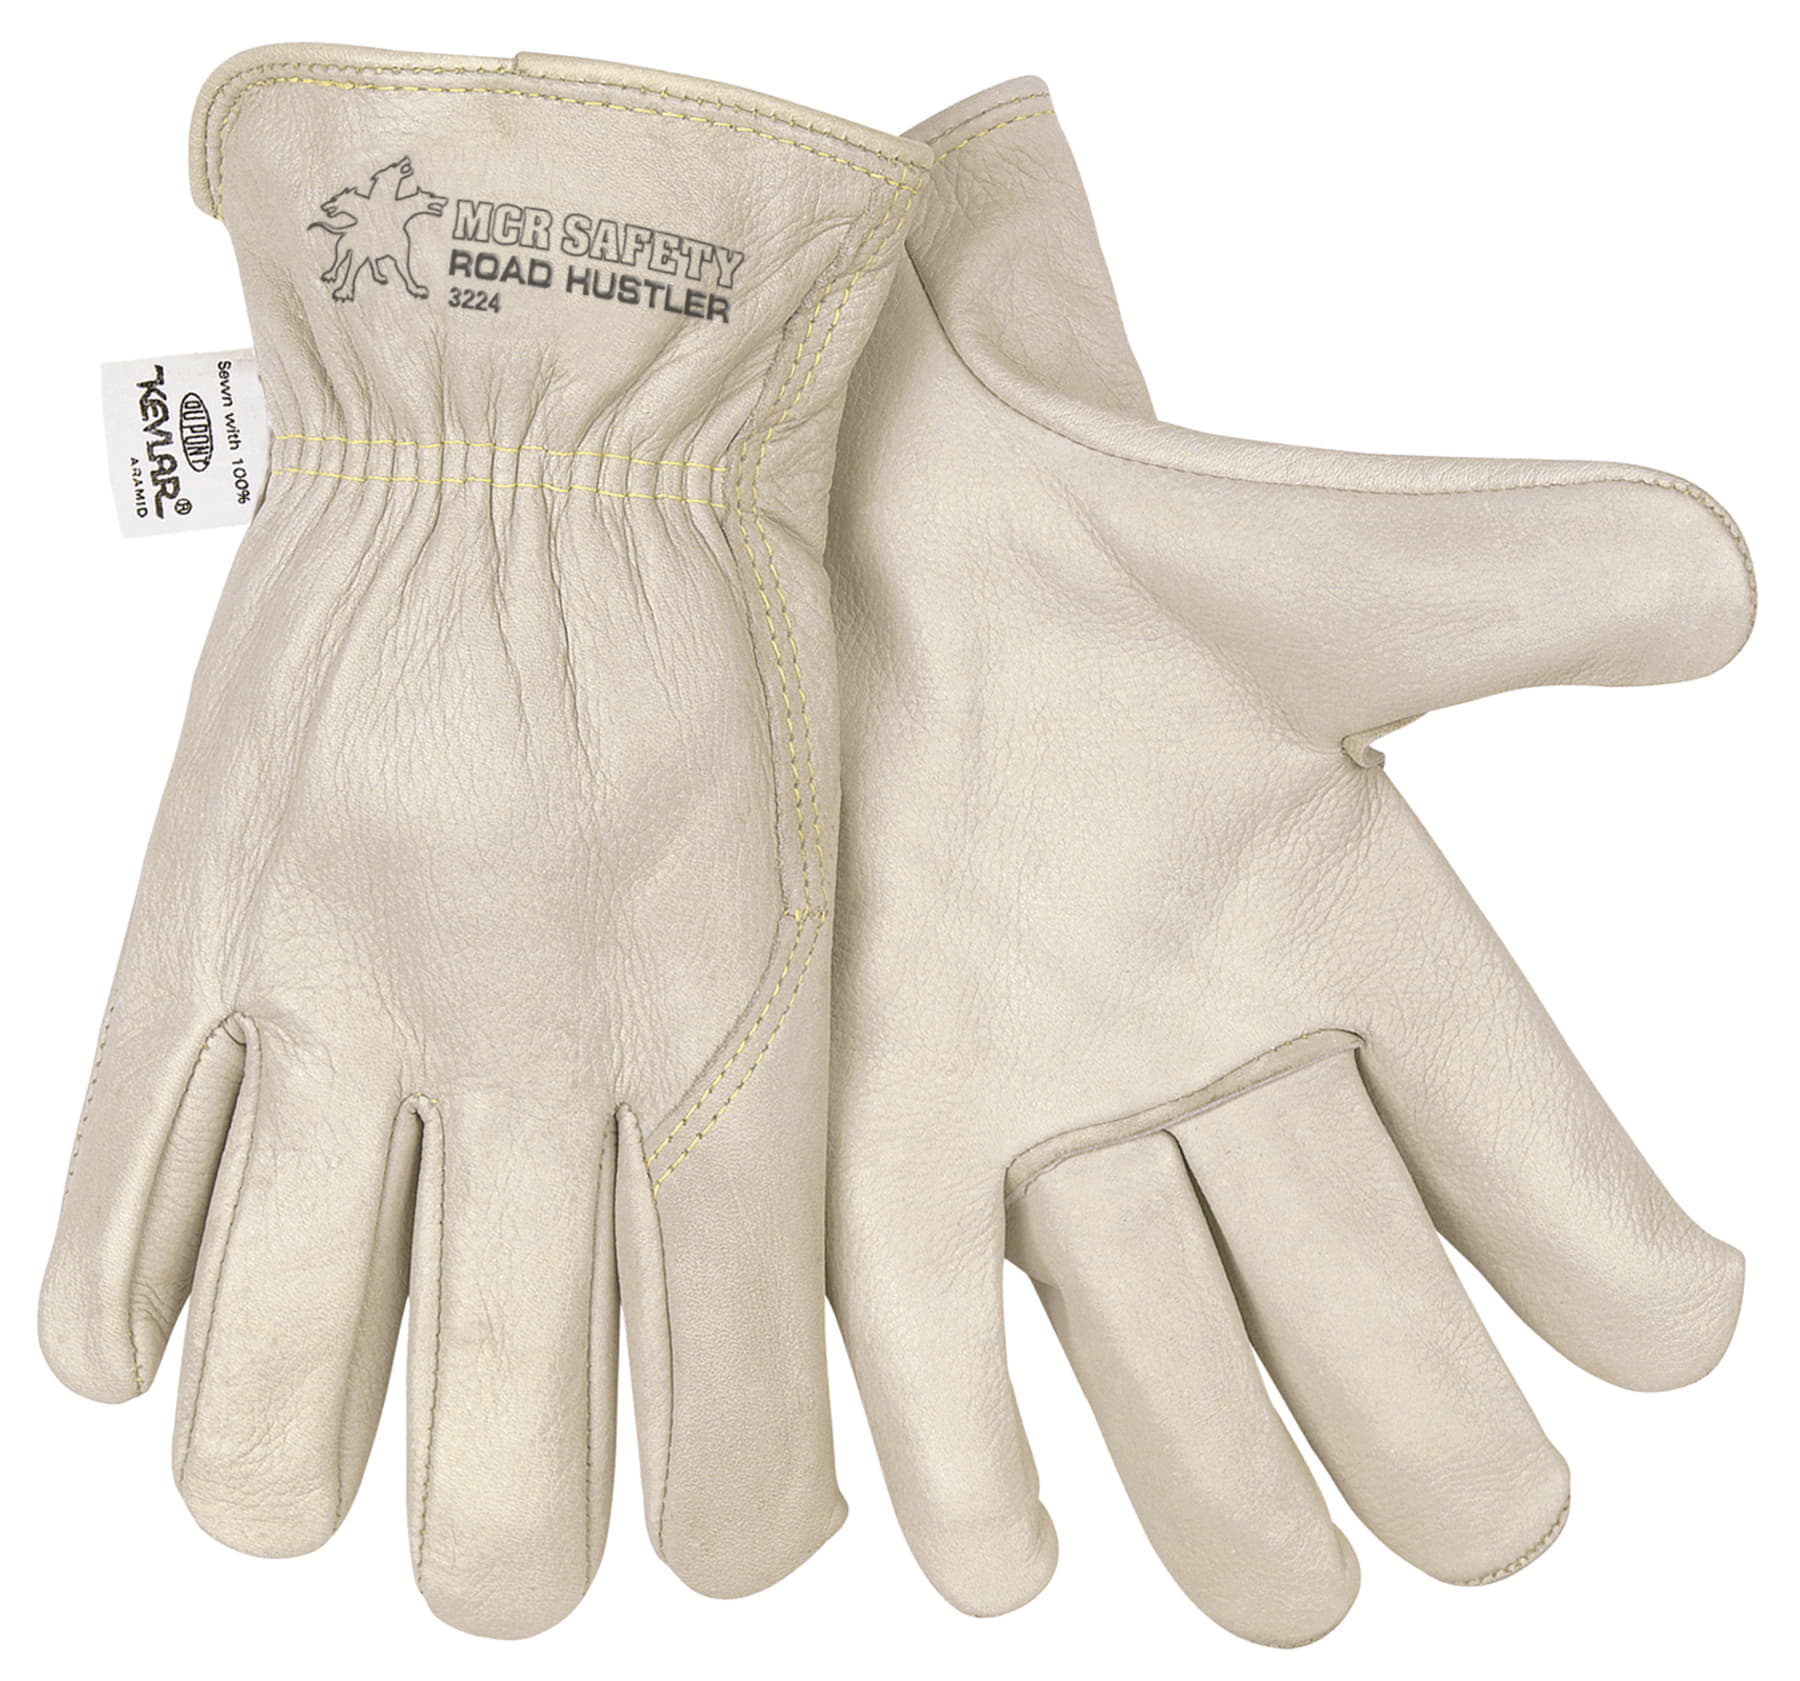 MCR Safety 3224 Cowhide Leather glove